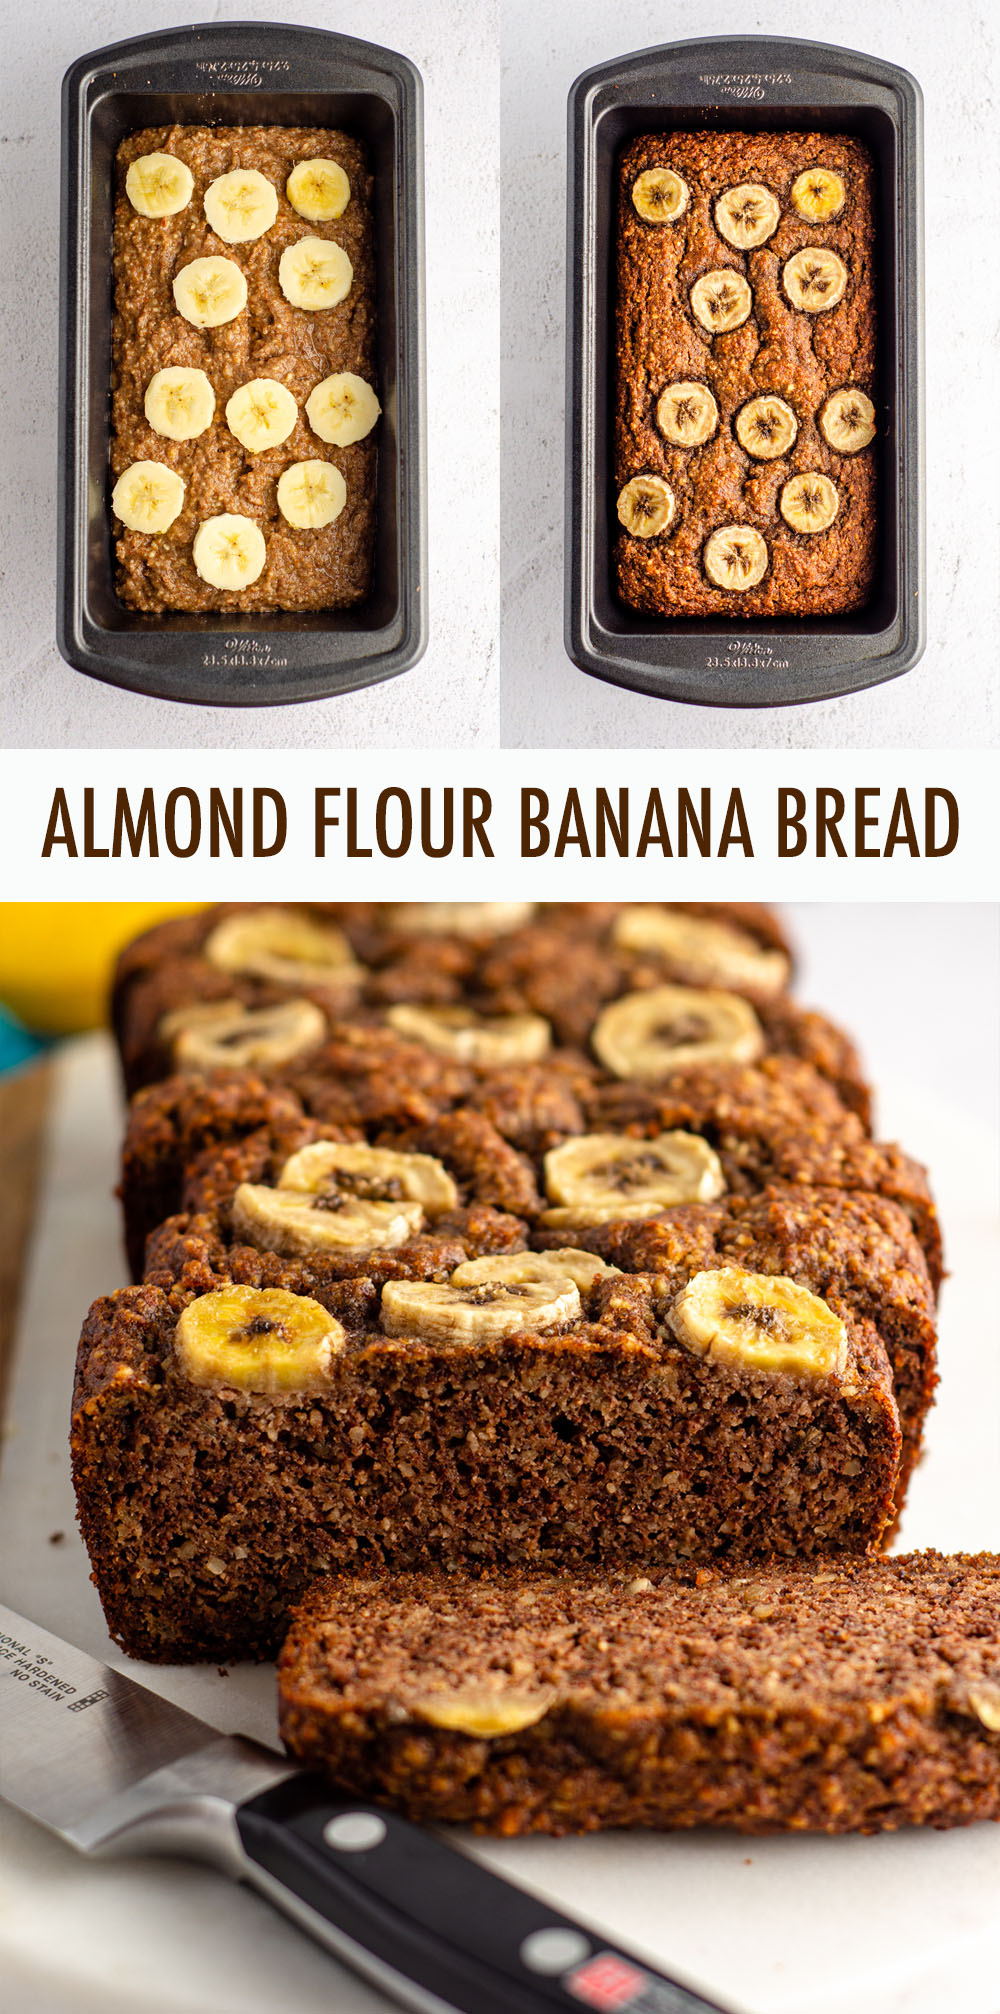 Moist and flavorful banana bread made entirely with almond flour for a naturally gluten free quick bread.